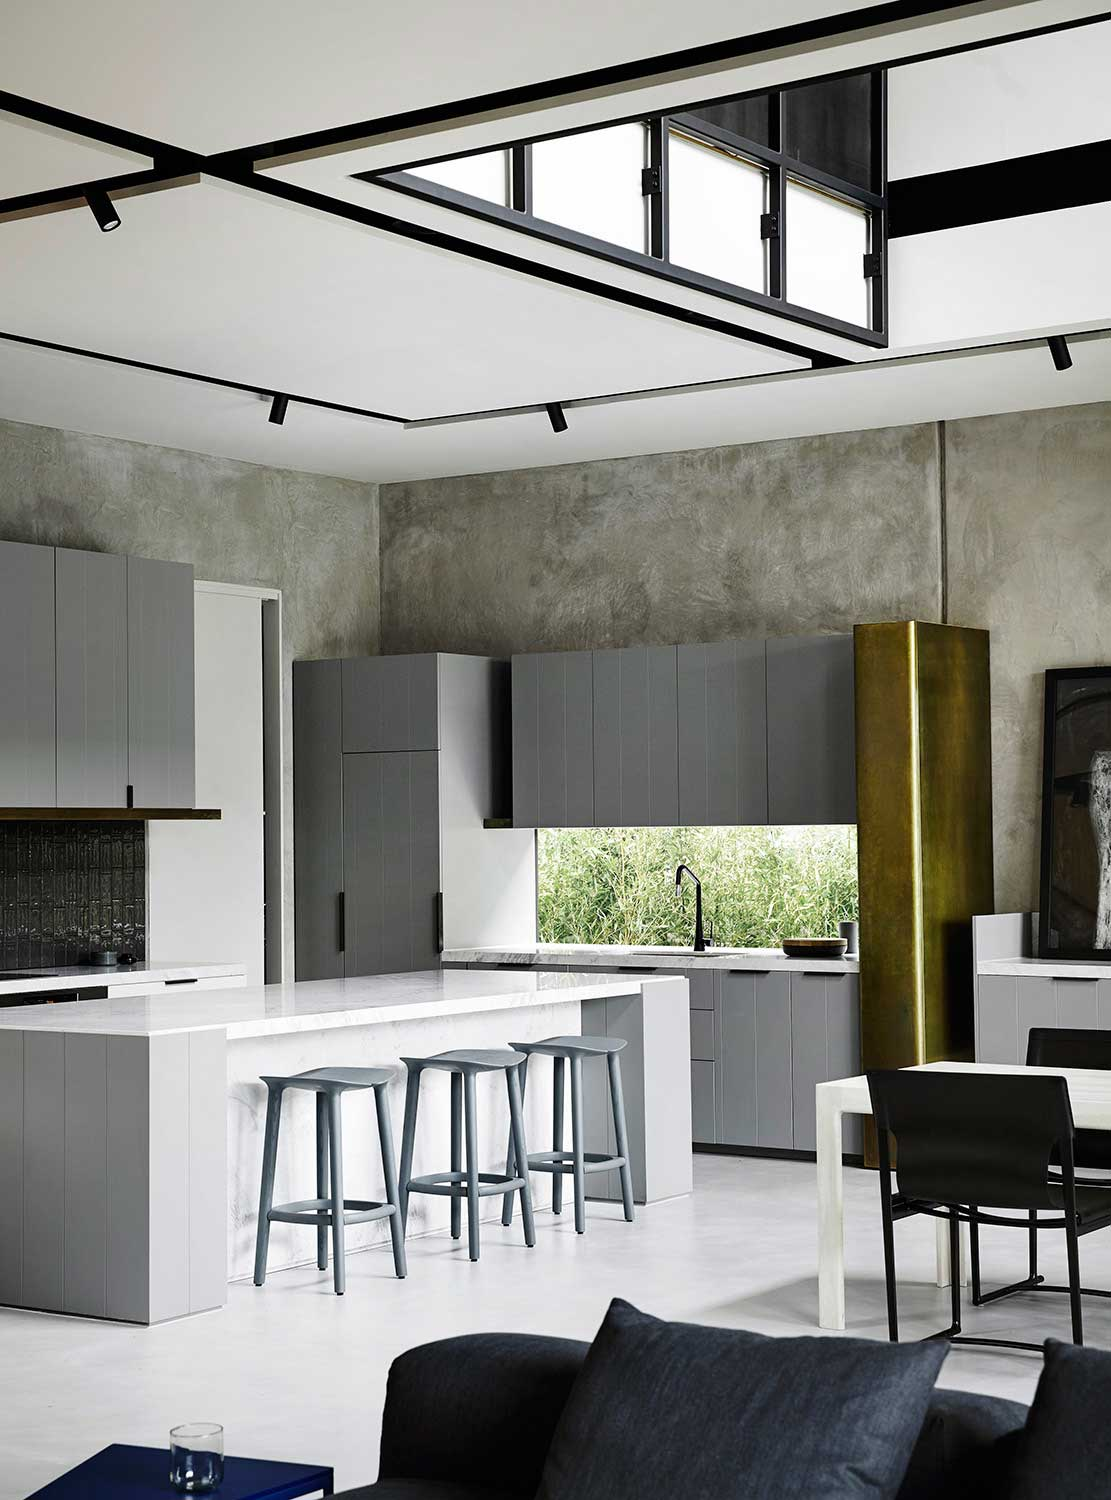 Balwyn-House-in-Melbourne-Collingwood-by-Fiona-Lynch-Design-Office-Yellowtrace-10